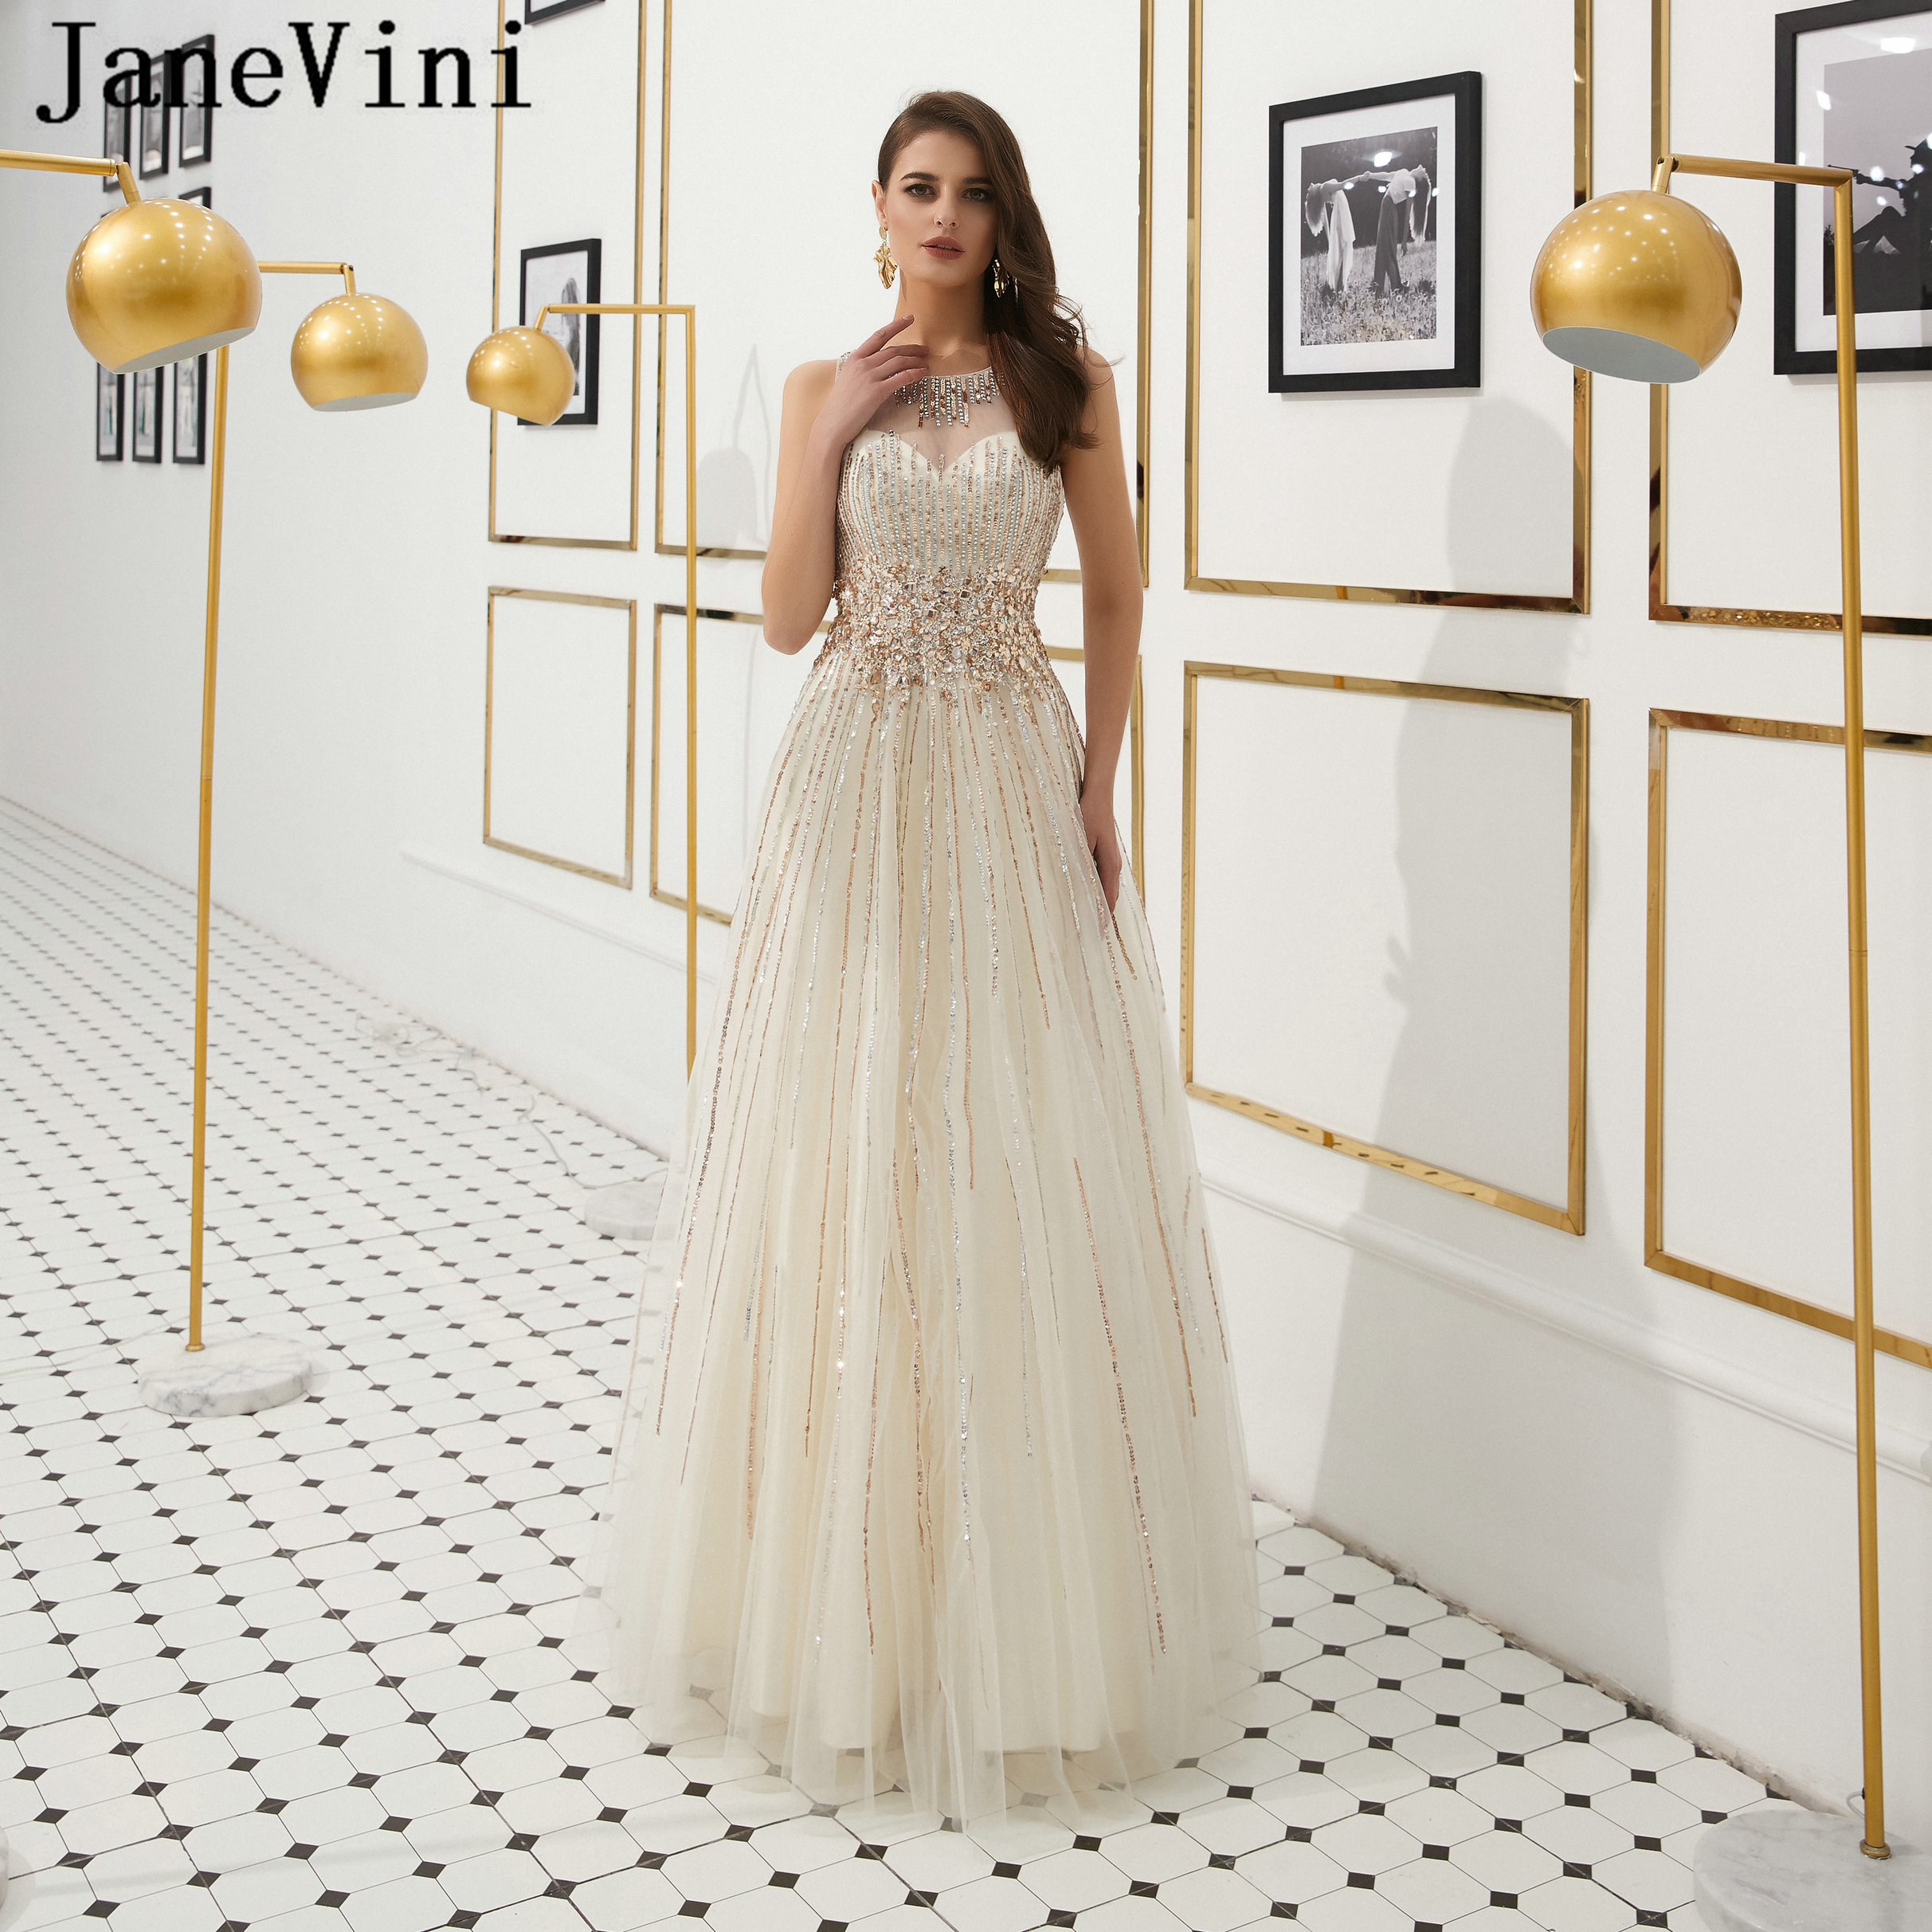 JaneVini Sparkling Sequins A Line Long   Prom     Dresses   2019 O Neck Luxury Heavy Beaded Arabic Tulle Evening Party Gowns Ballkleider